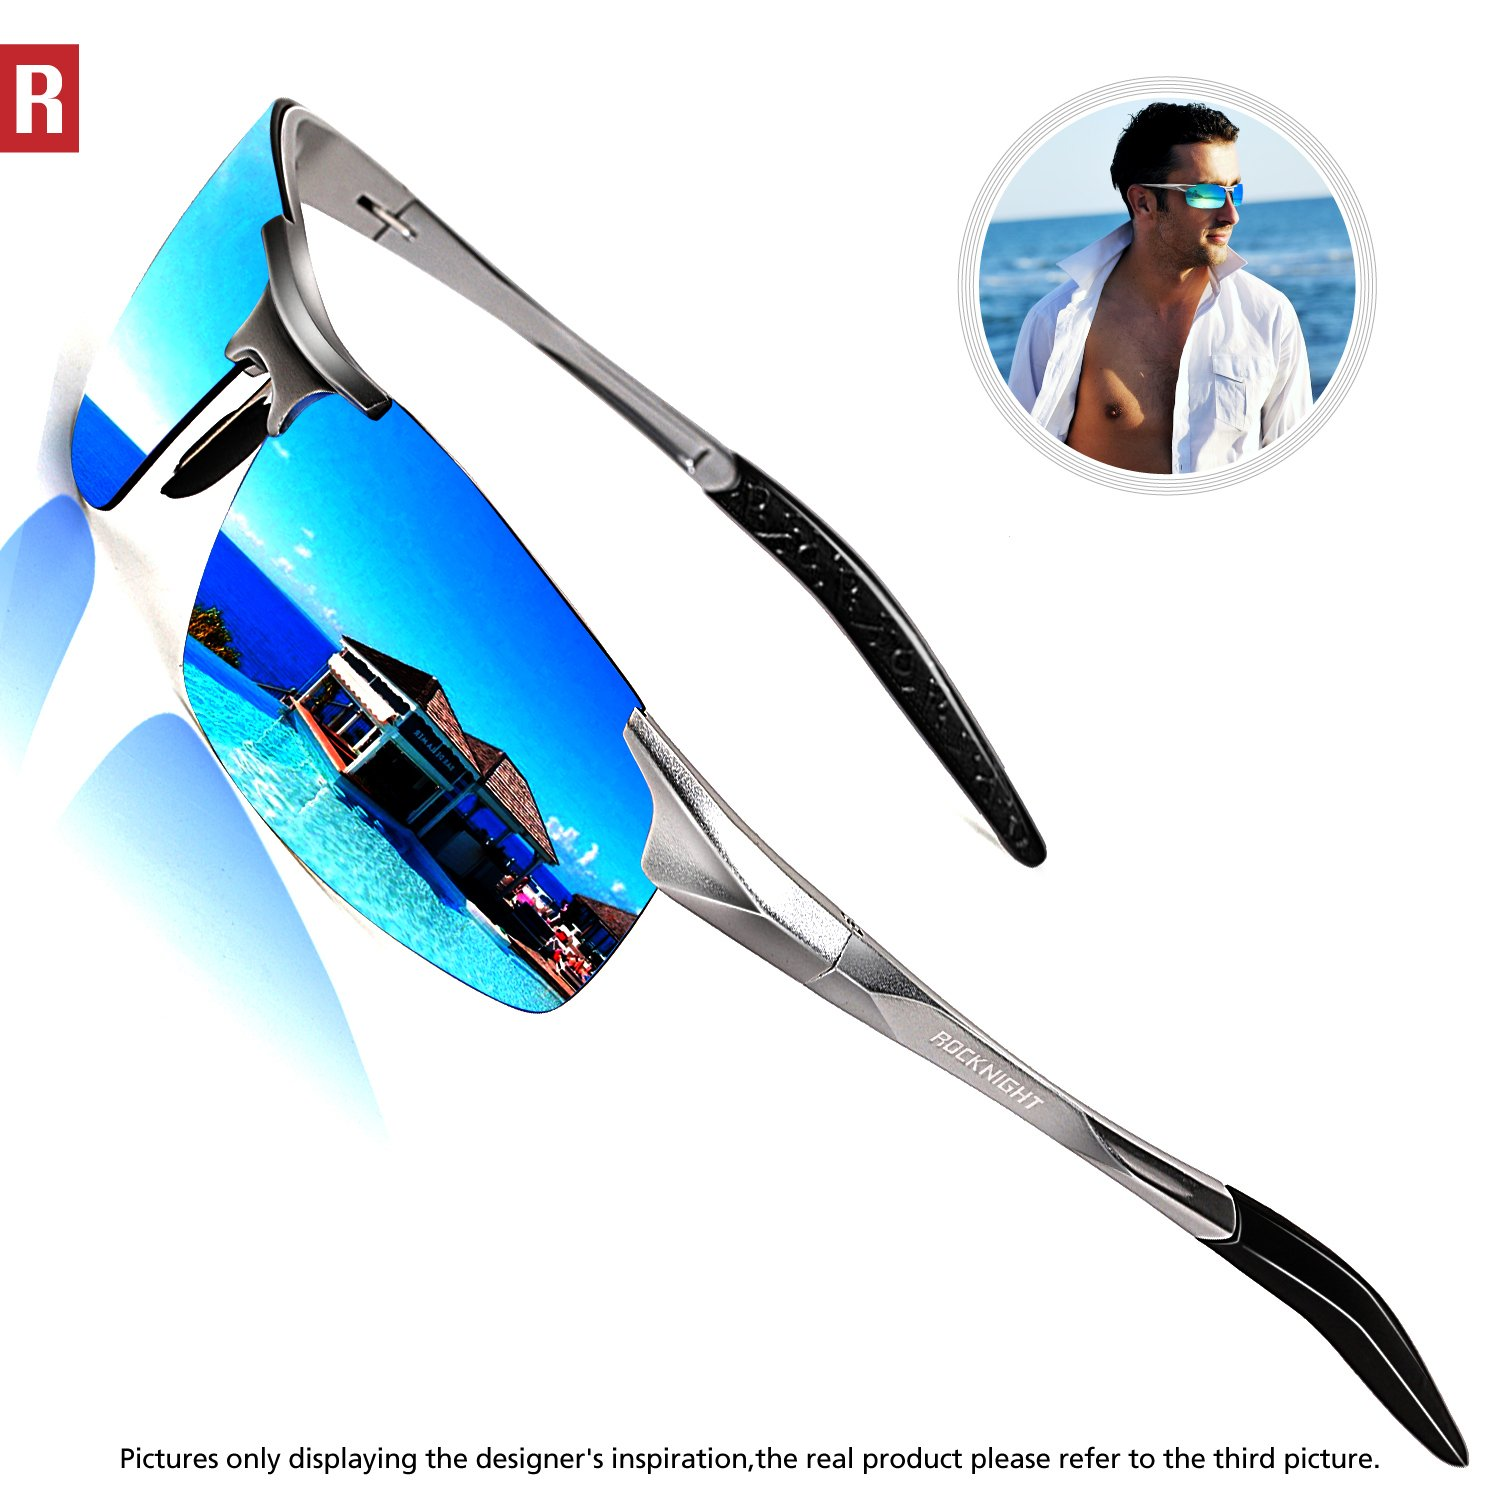 ROCKNIGHT Driving Polarized Sunglasses For Men UV Protection Mirrored Sunglasses Ultra Lightweight Al-Mg Metal Outdoor Golf Fishing Sports Sunglasses Rimless by ROCKNIGHT